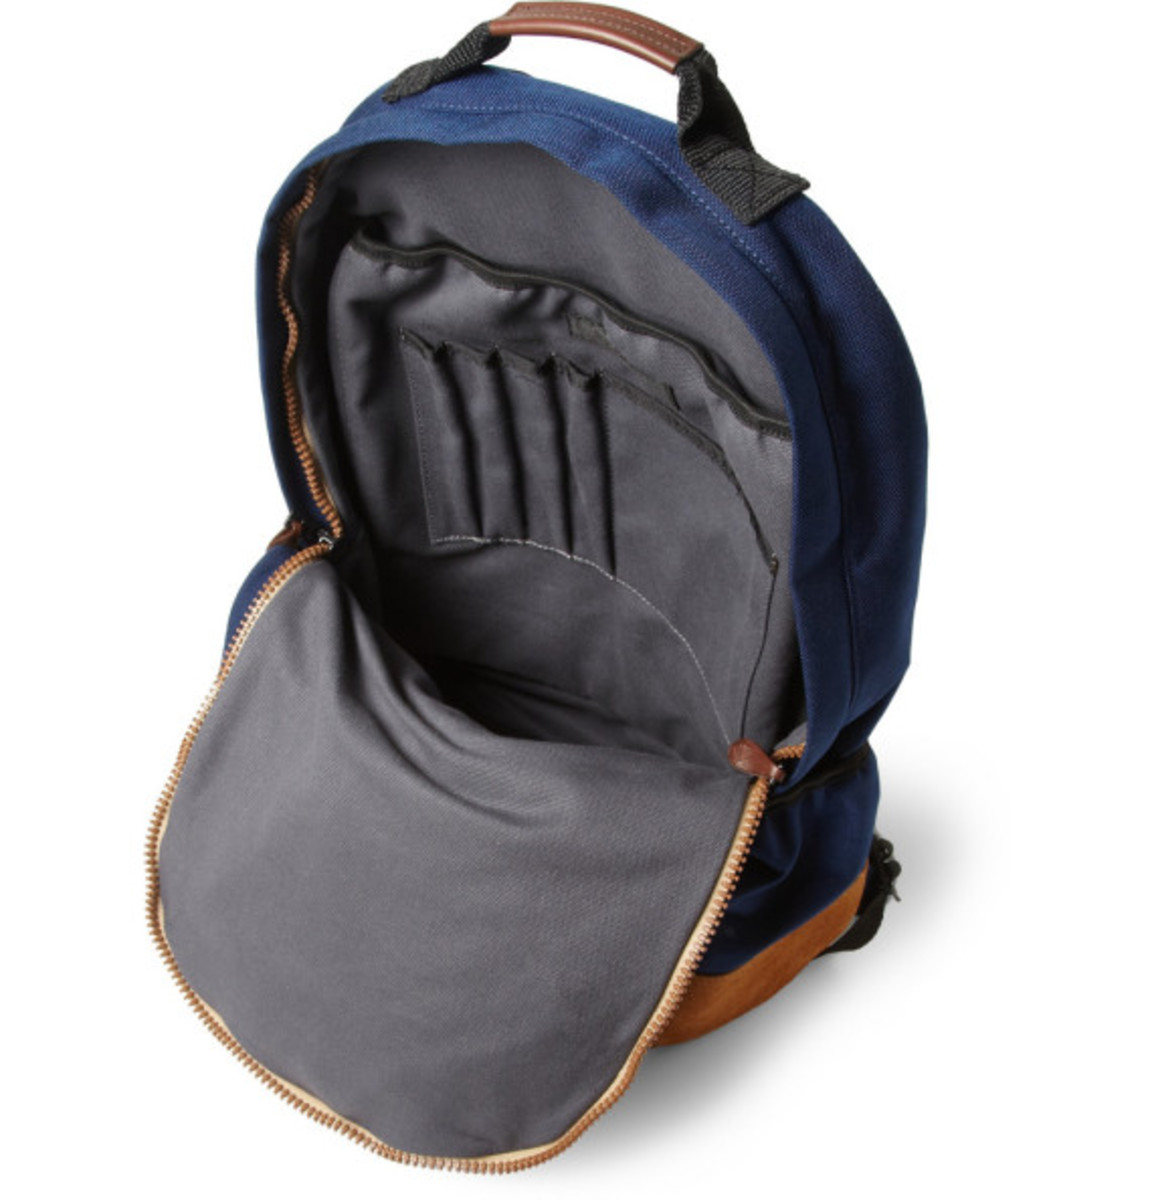 rag-and-bone-burnished-leather-and-nylon-backpack-06